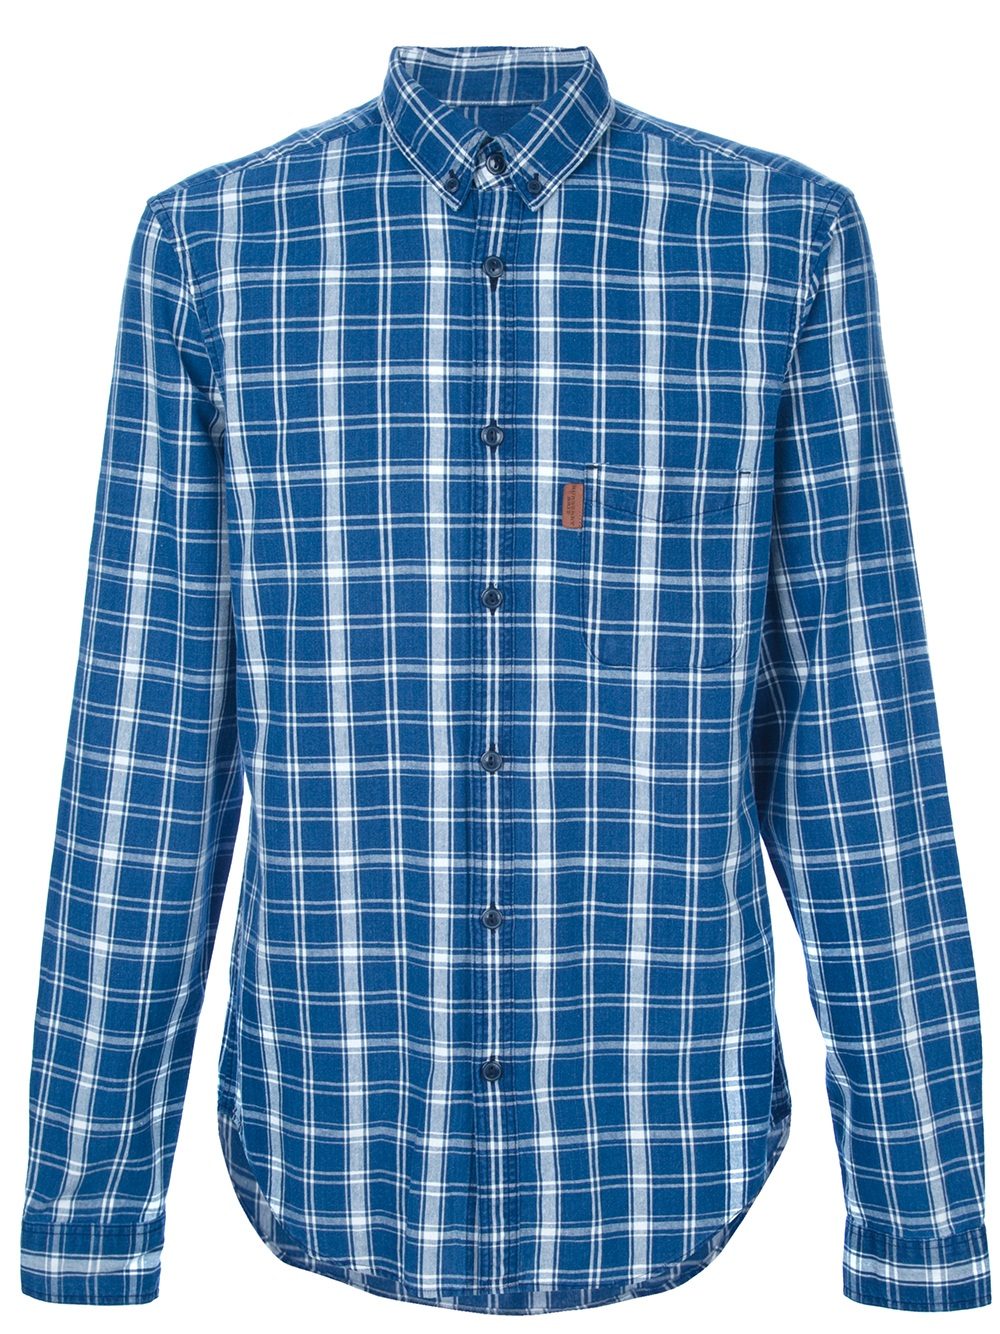 Lyst burberry brit checked shirt in blue for men for Burberry brit checked shirt